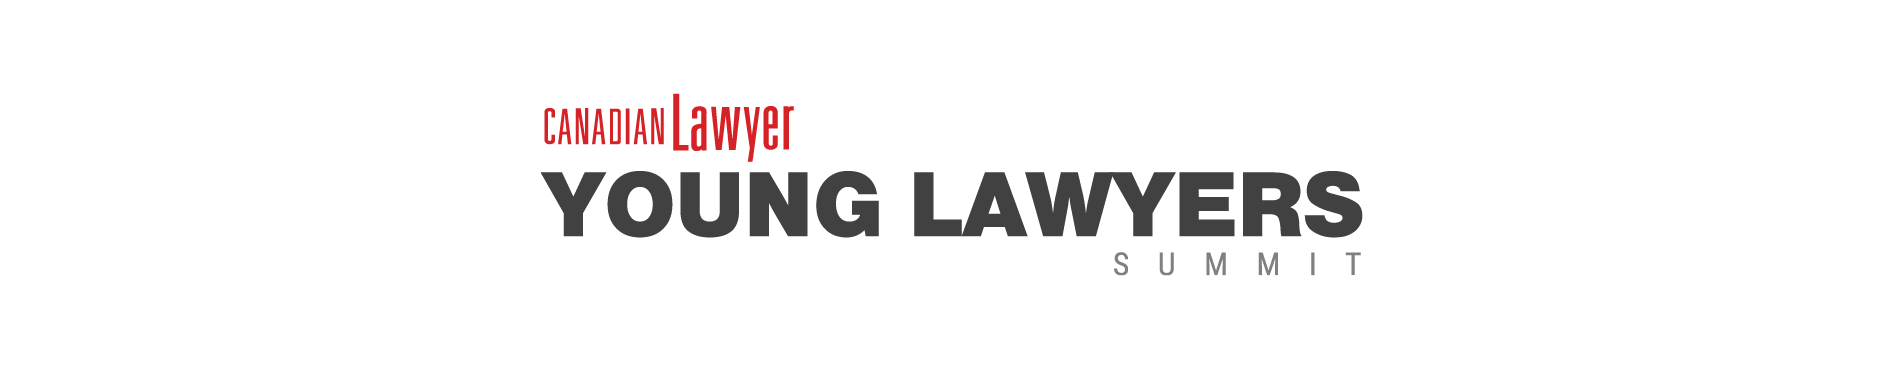 Young Lawyers Summit Canada